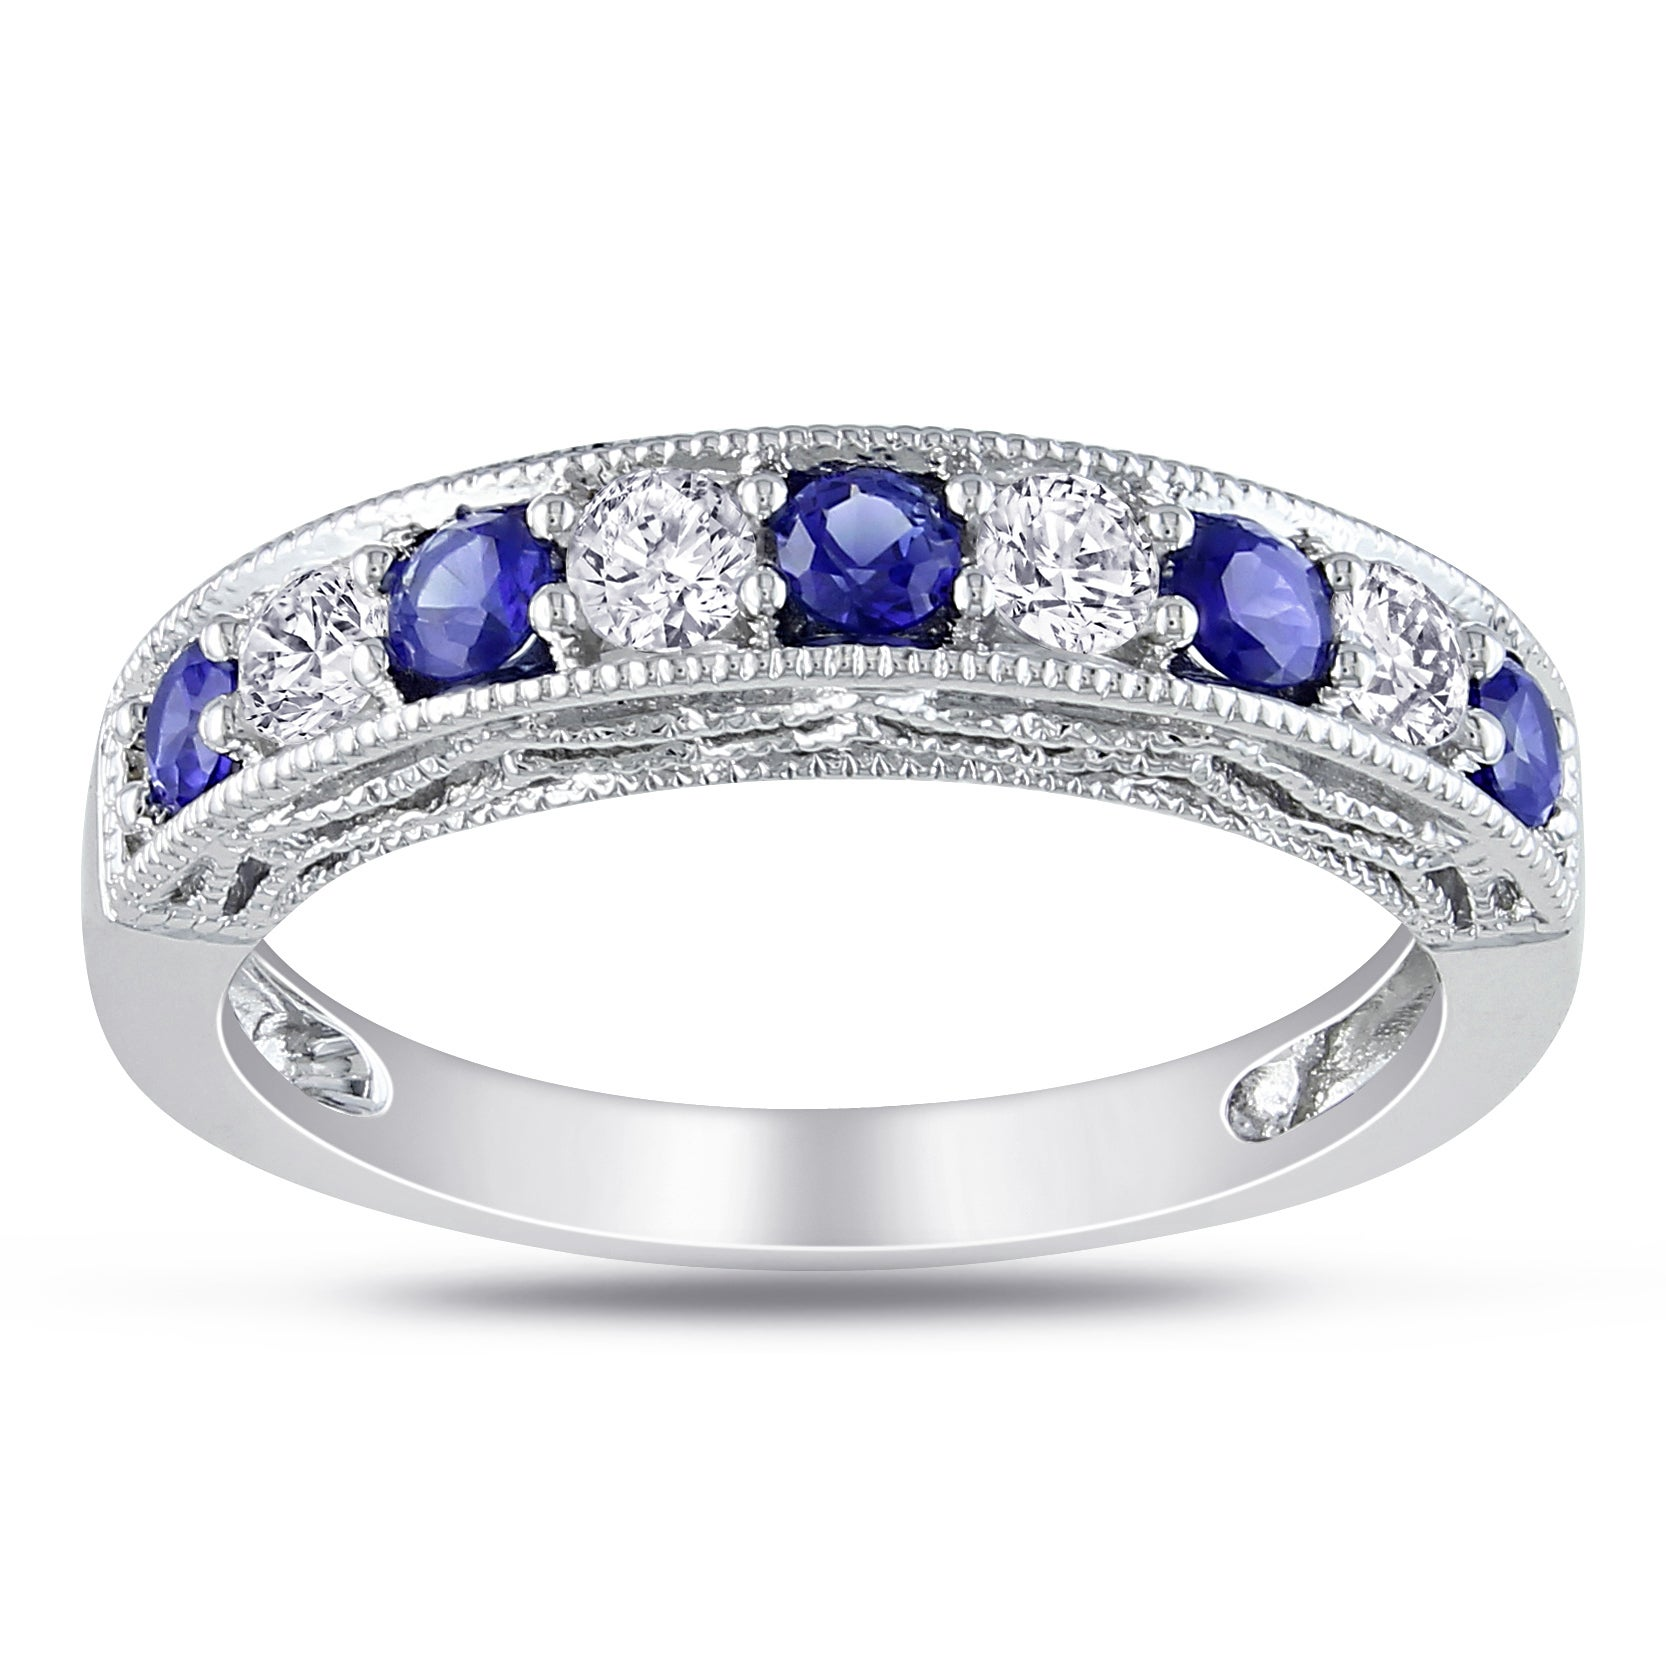 p bands white zirconia gold band anniversary ring cubic in eternity sapphire and